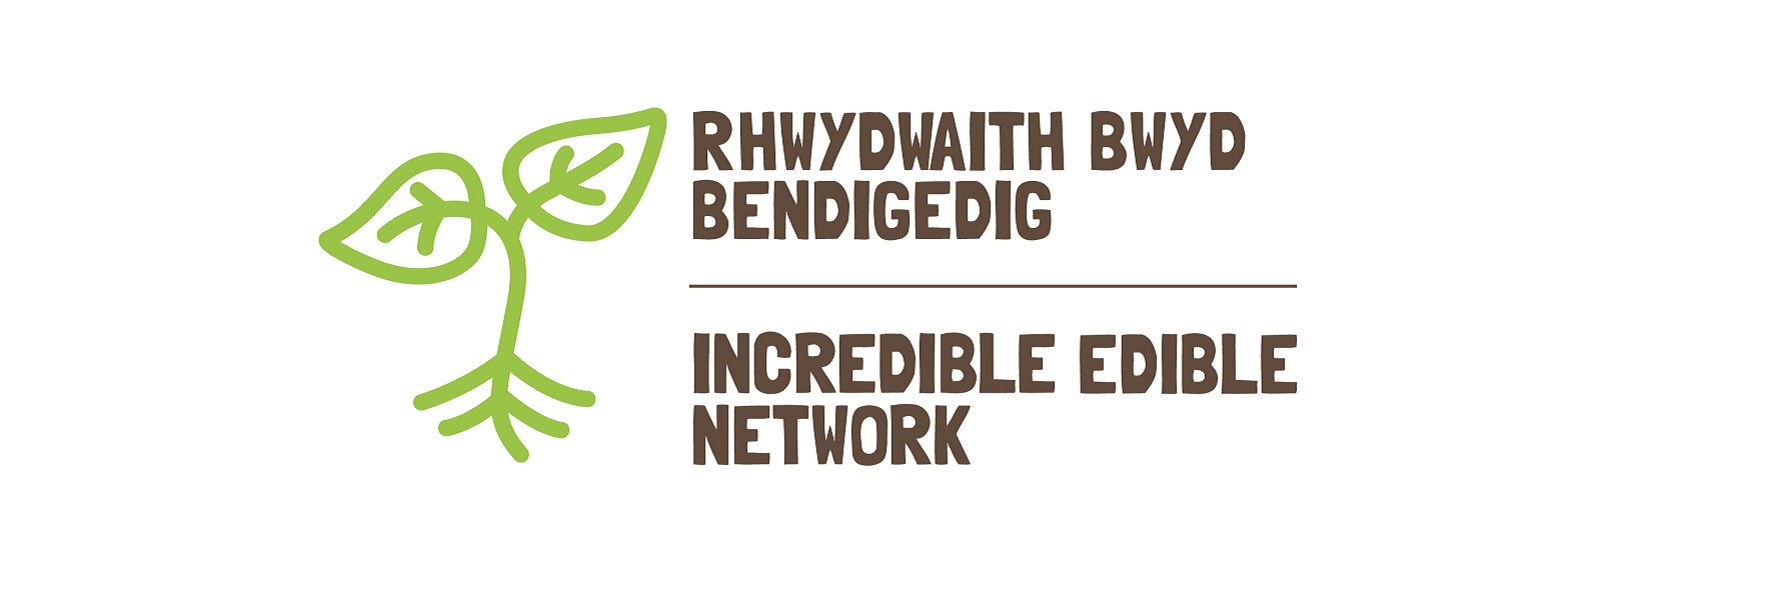 Incredible Edible network Welsh/English dual language logo